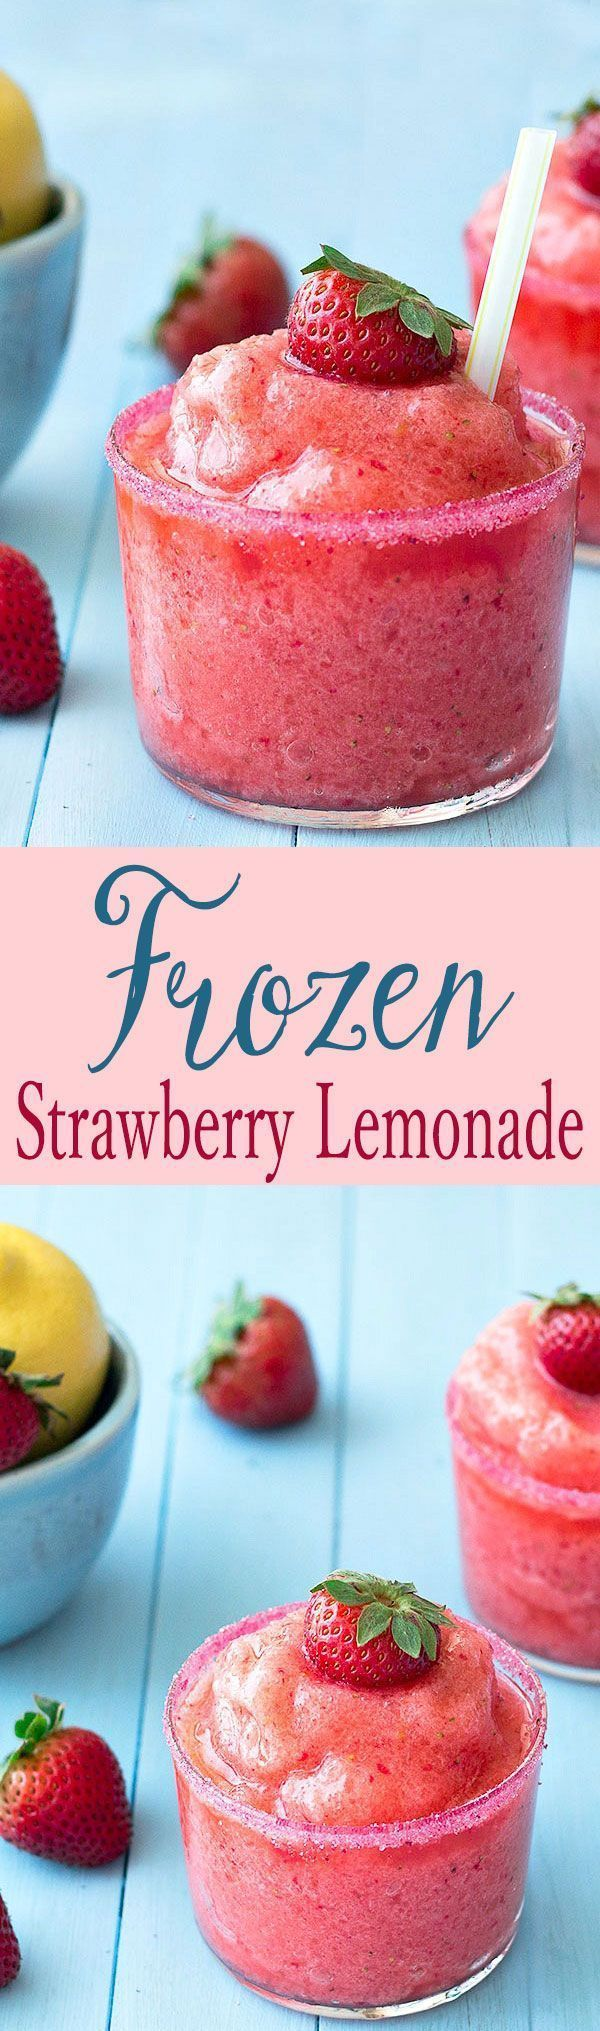 Frozen Strawberry Lemonade - So easy to make, full of fresh strawberries and tart lemons. Not too sour or too sweet, just perfect!